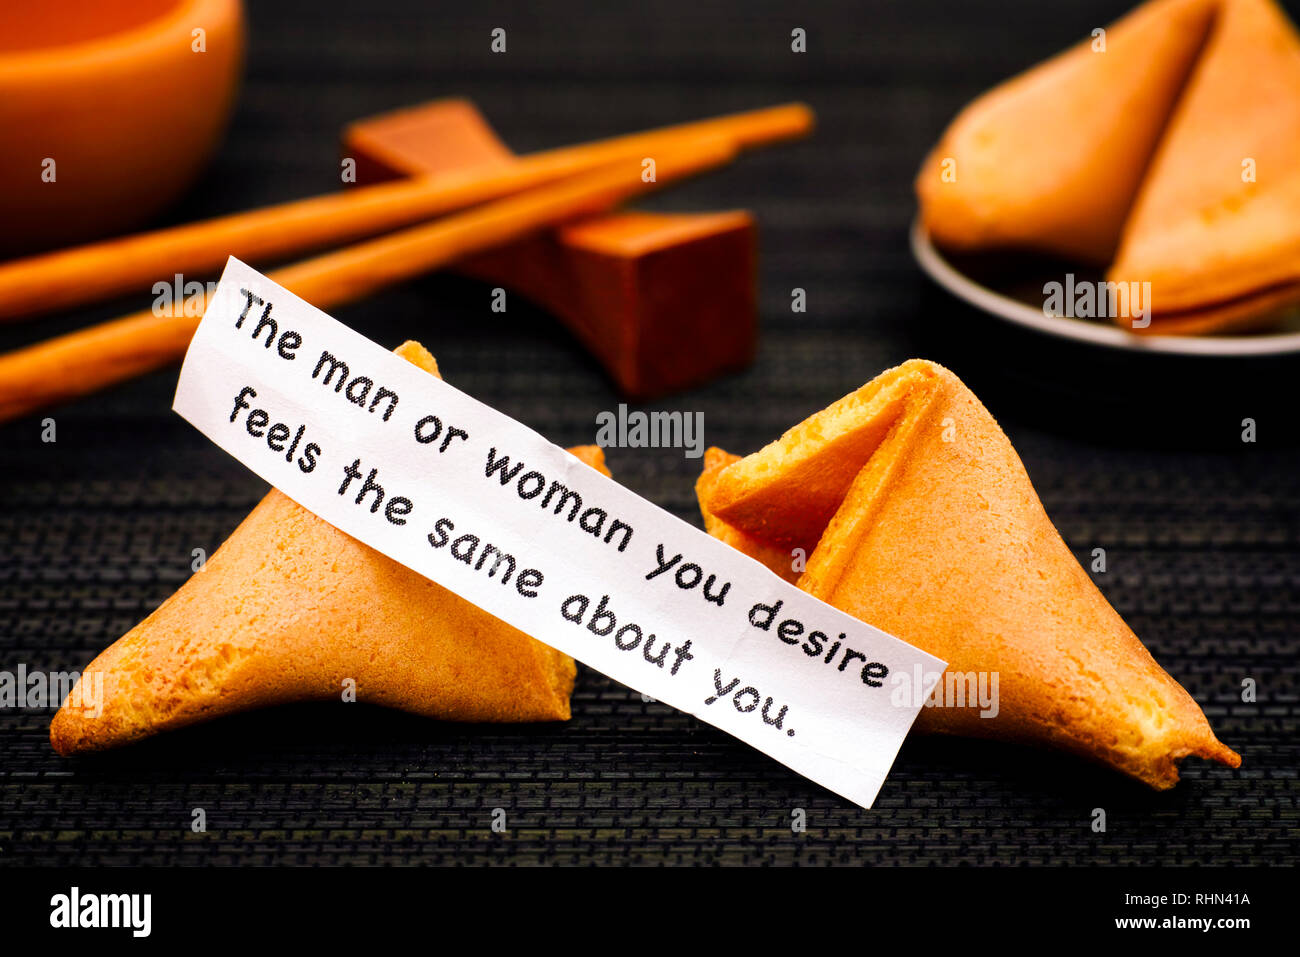 Paper strip with phrase The Man or Woman You Desire Feels the Same About You. from fortune cookie, another cookie and chopsticks on black napkin backg - Stock Image